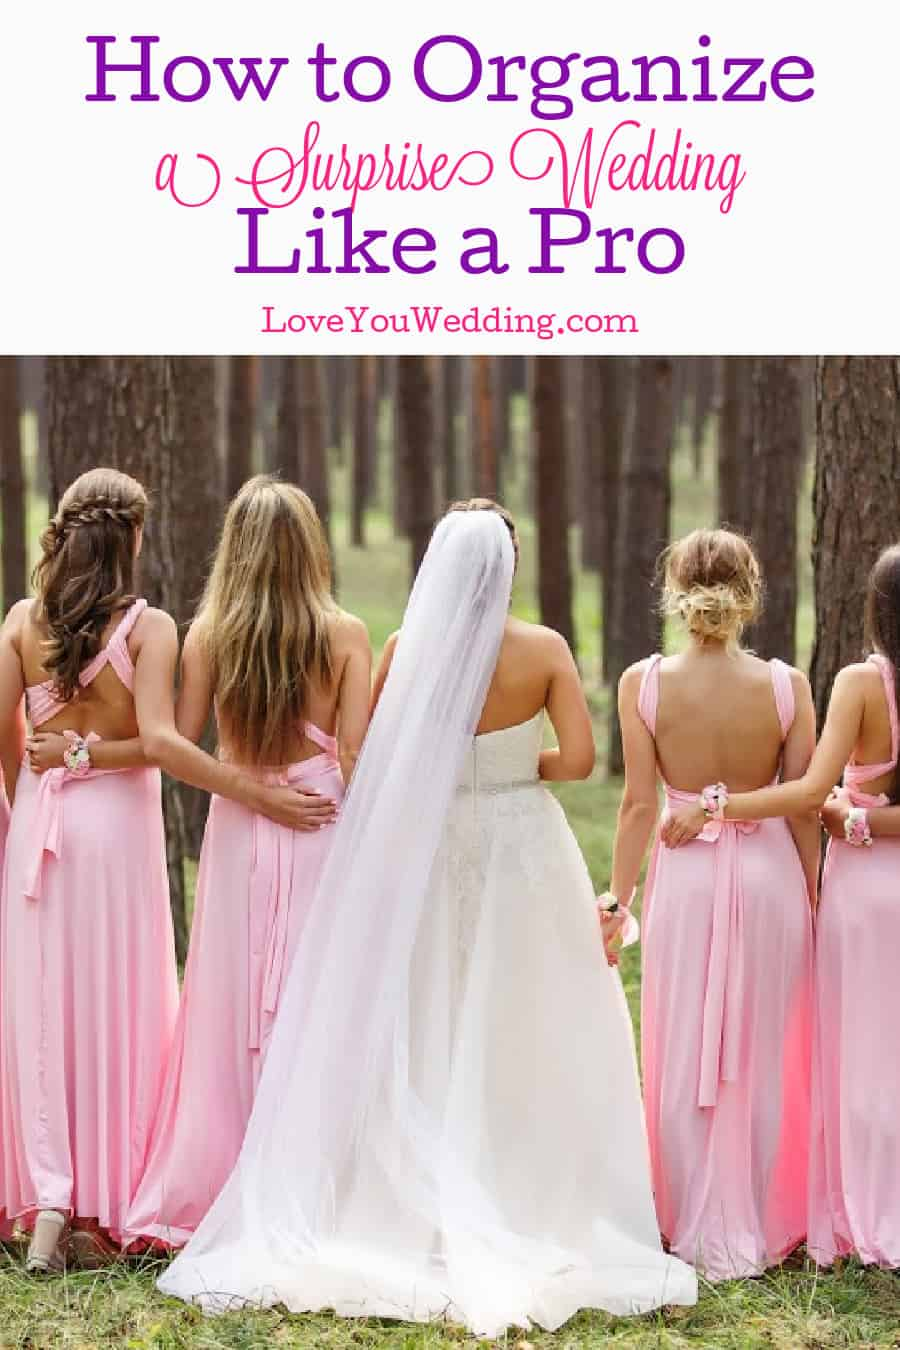 Back view of a bride in white with bridesmaids in pink